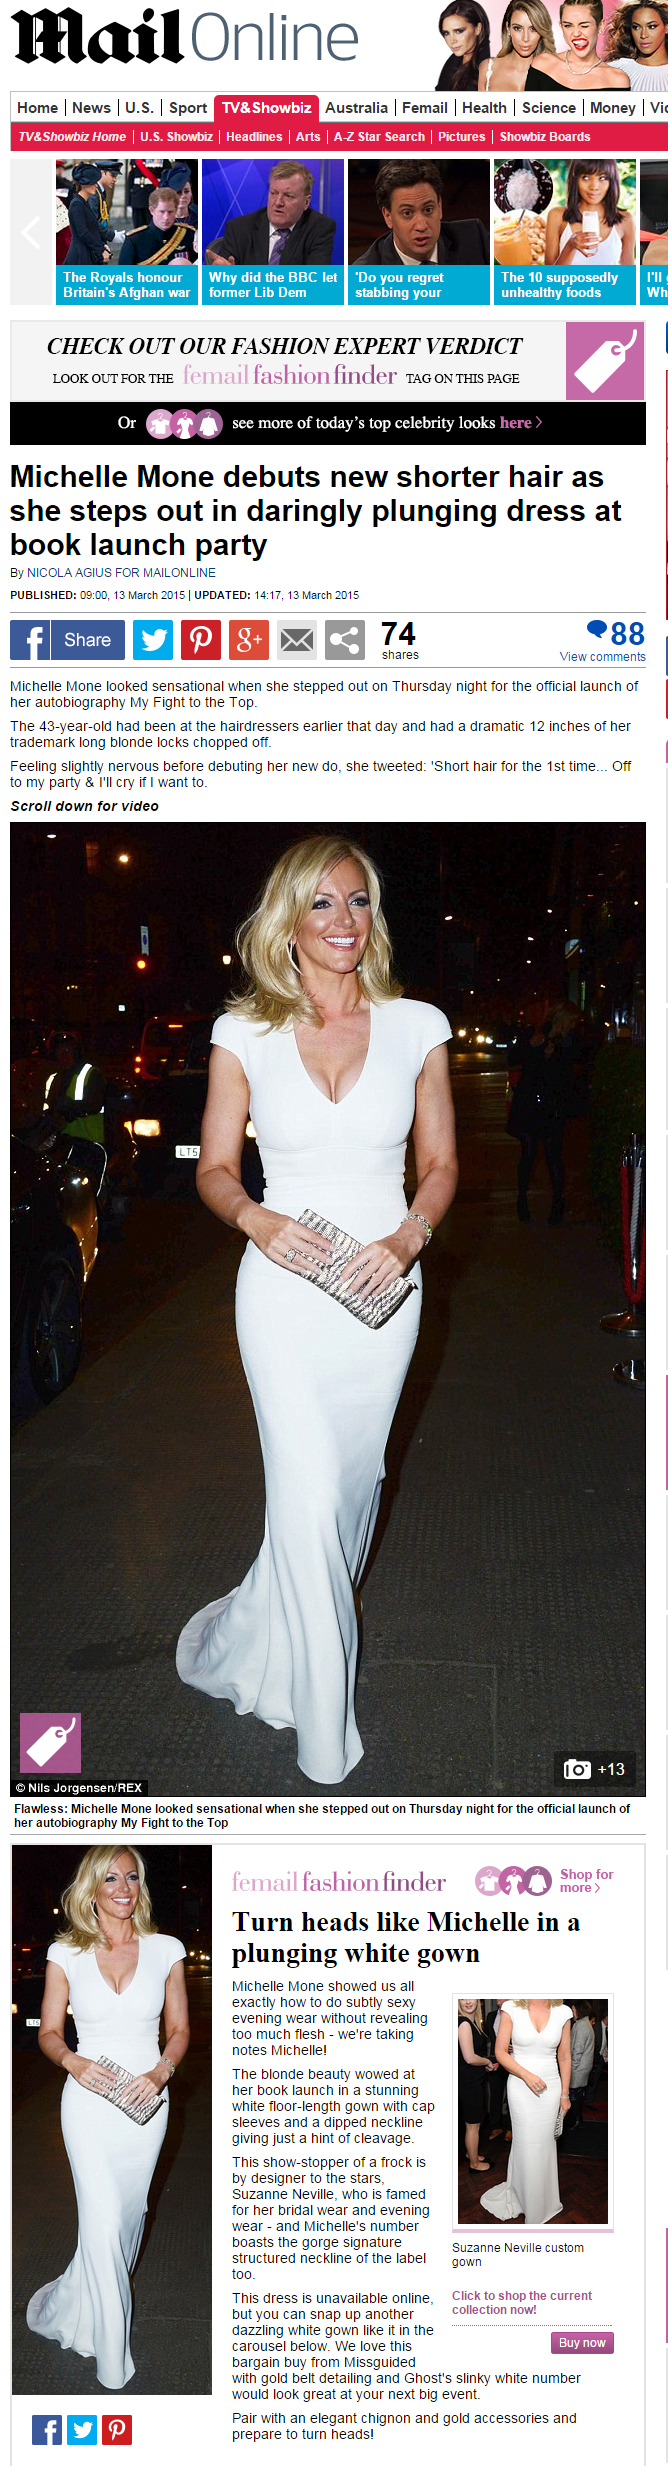 March-2015_Michelle-Mone-debuts-shorter-hair_-dailymail